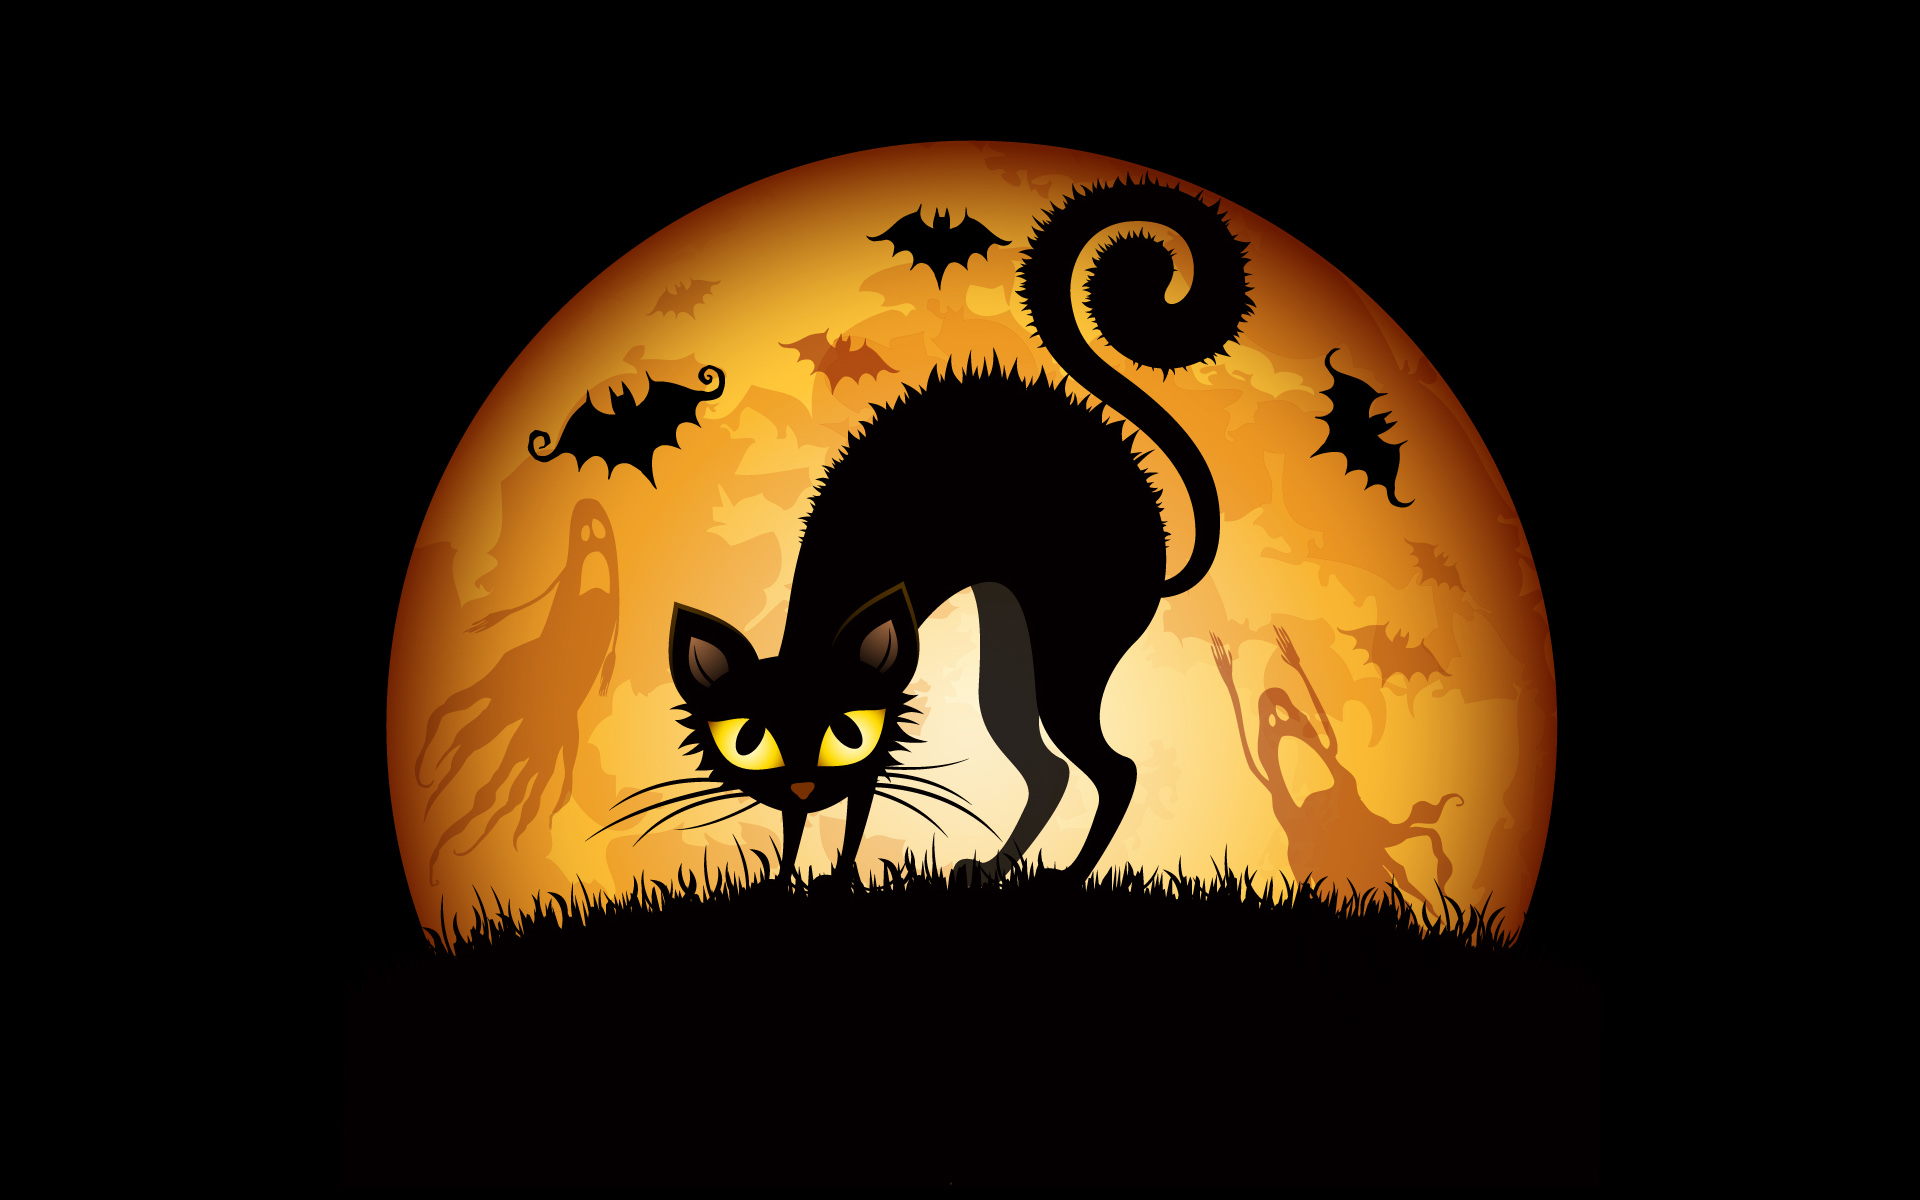 Halloween Fun Fact: With their link to the ancient Celtic festival of Samhain (a precursor to Halloween) and later to witches, cats have a permanent place in Halloween folklore. During the ancient celebration of Samhain, Druids were said to throw cats into a fire, often in wicker cages, as part of divination proceedings.